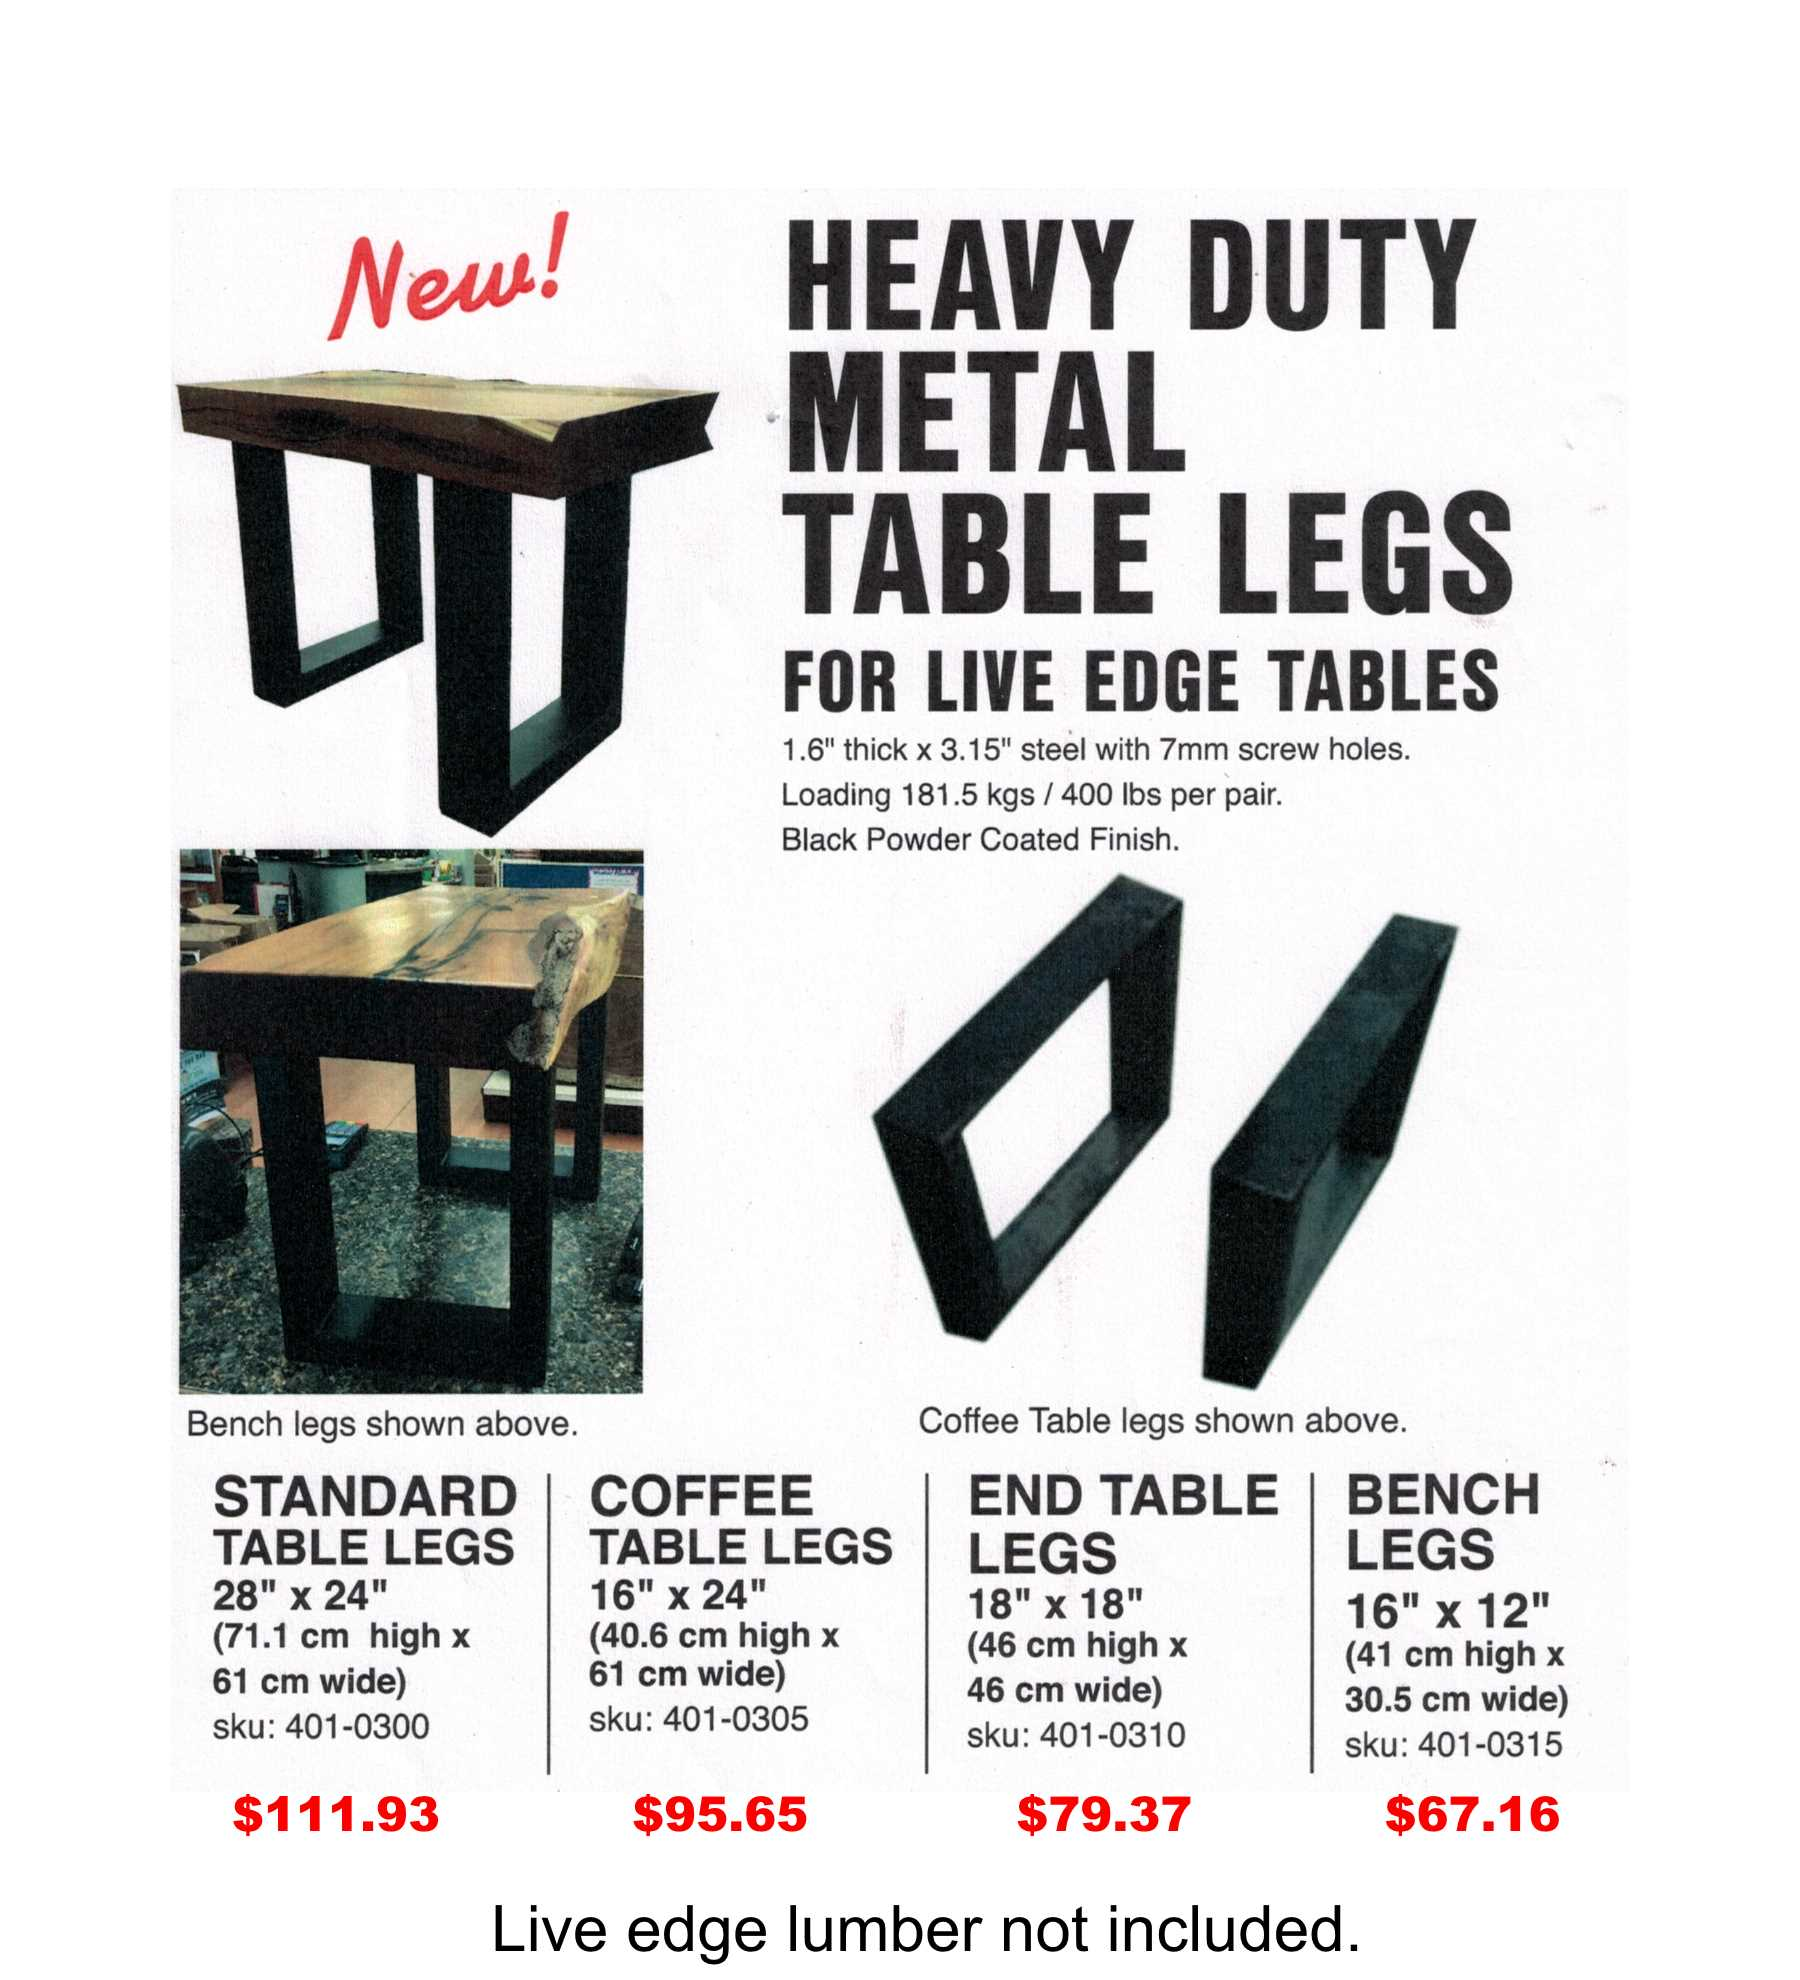 hd-table-legsnew